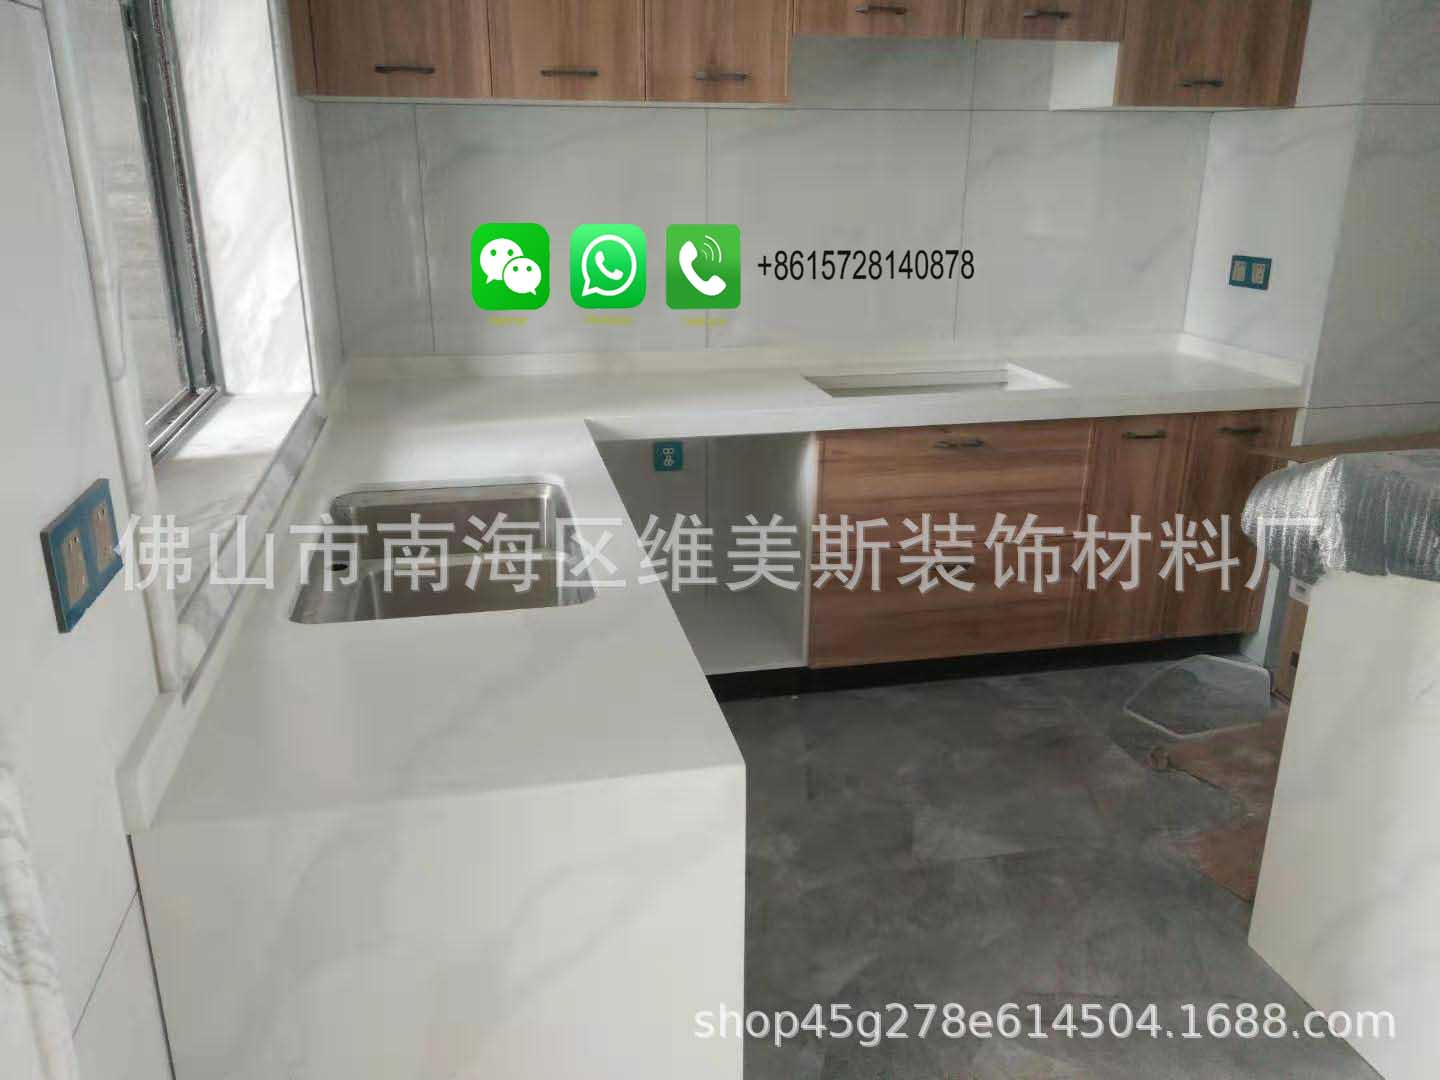 Foshan Weimeisi Customized Carrara White Marble Kitchen Worktops Finished Products: Kitchen Counter